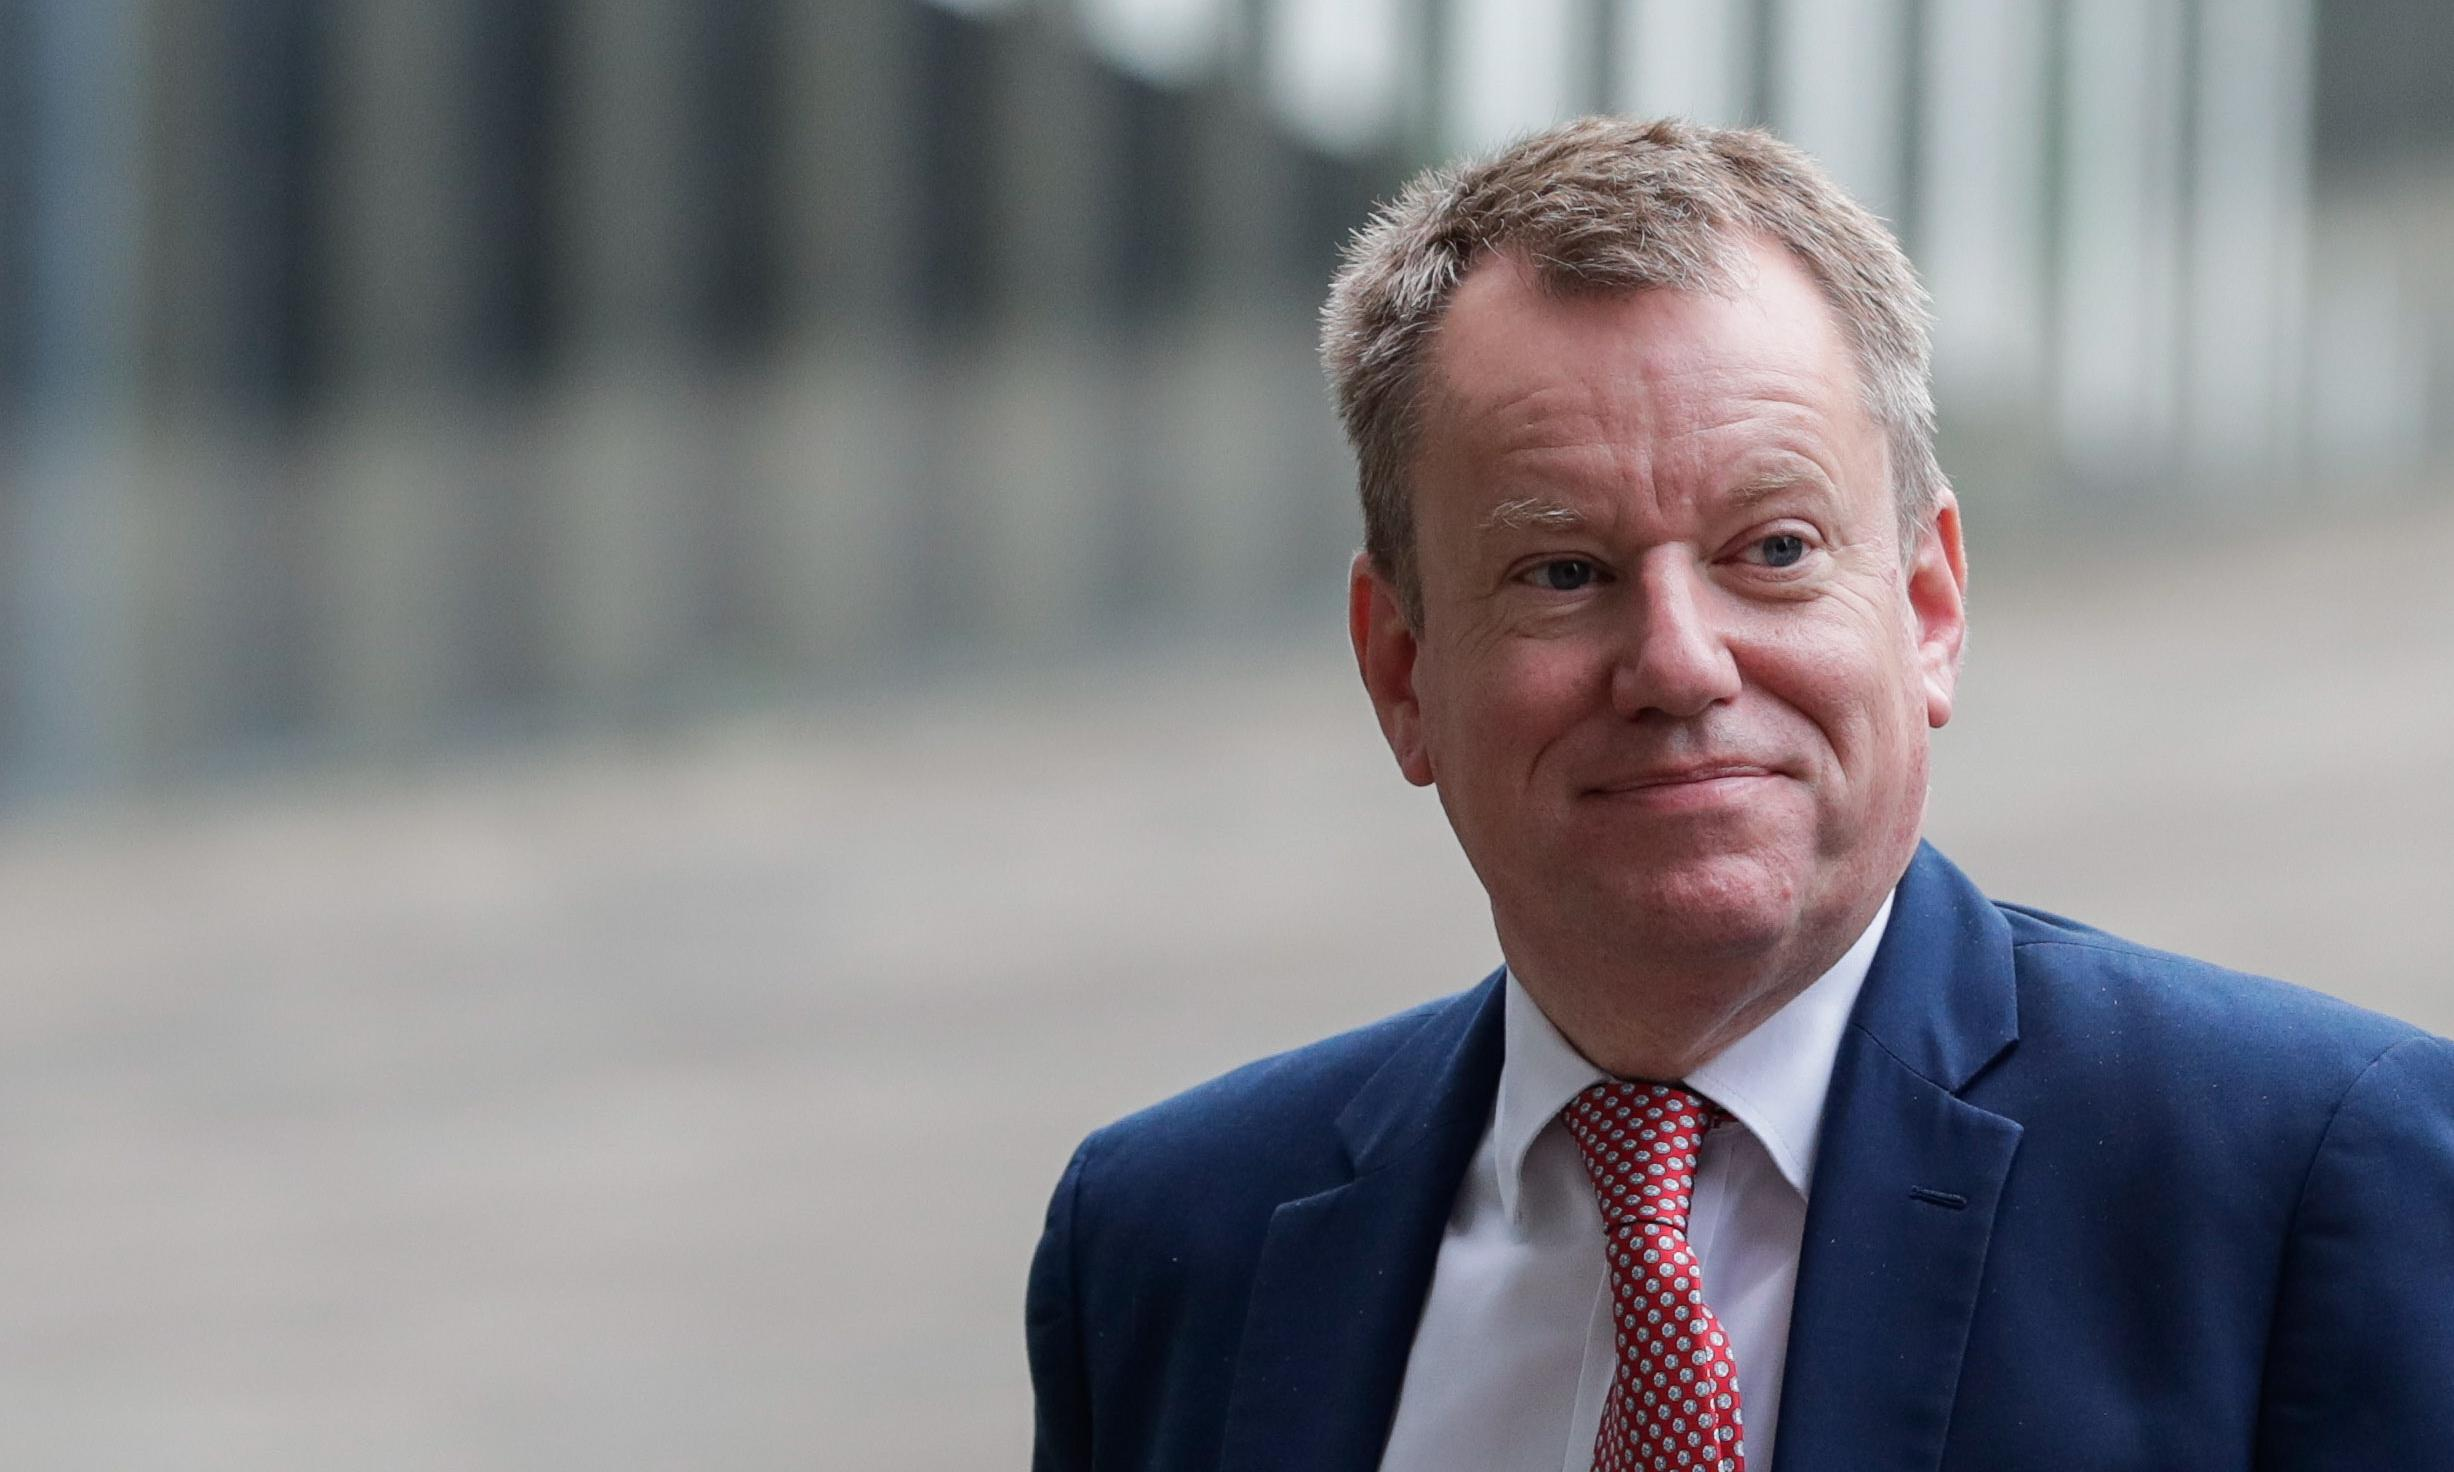 Brexit adviser David Frost to lead UK trade negotiations with EU